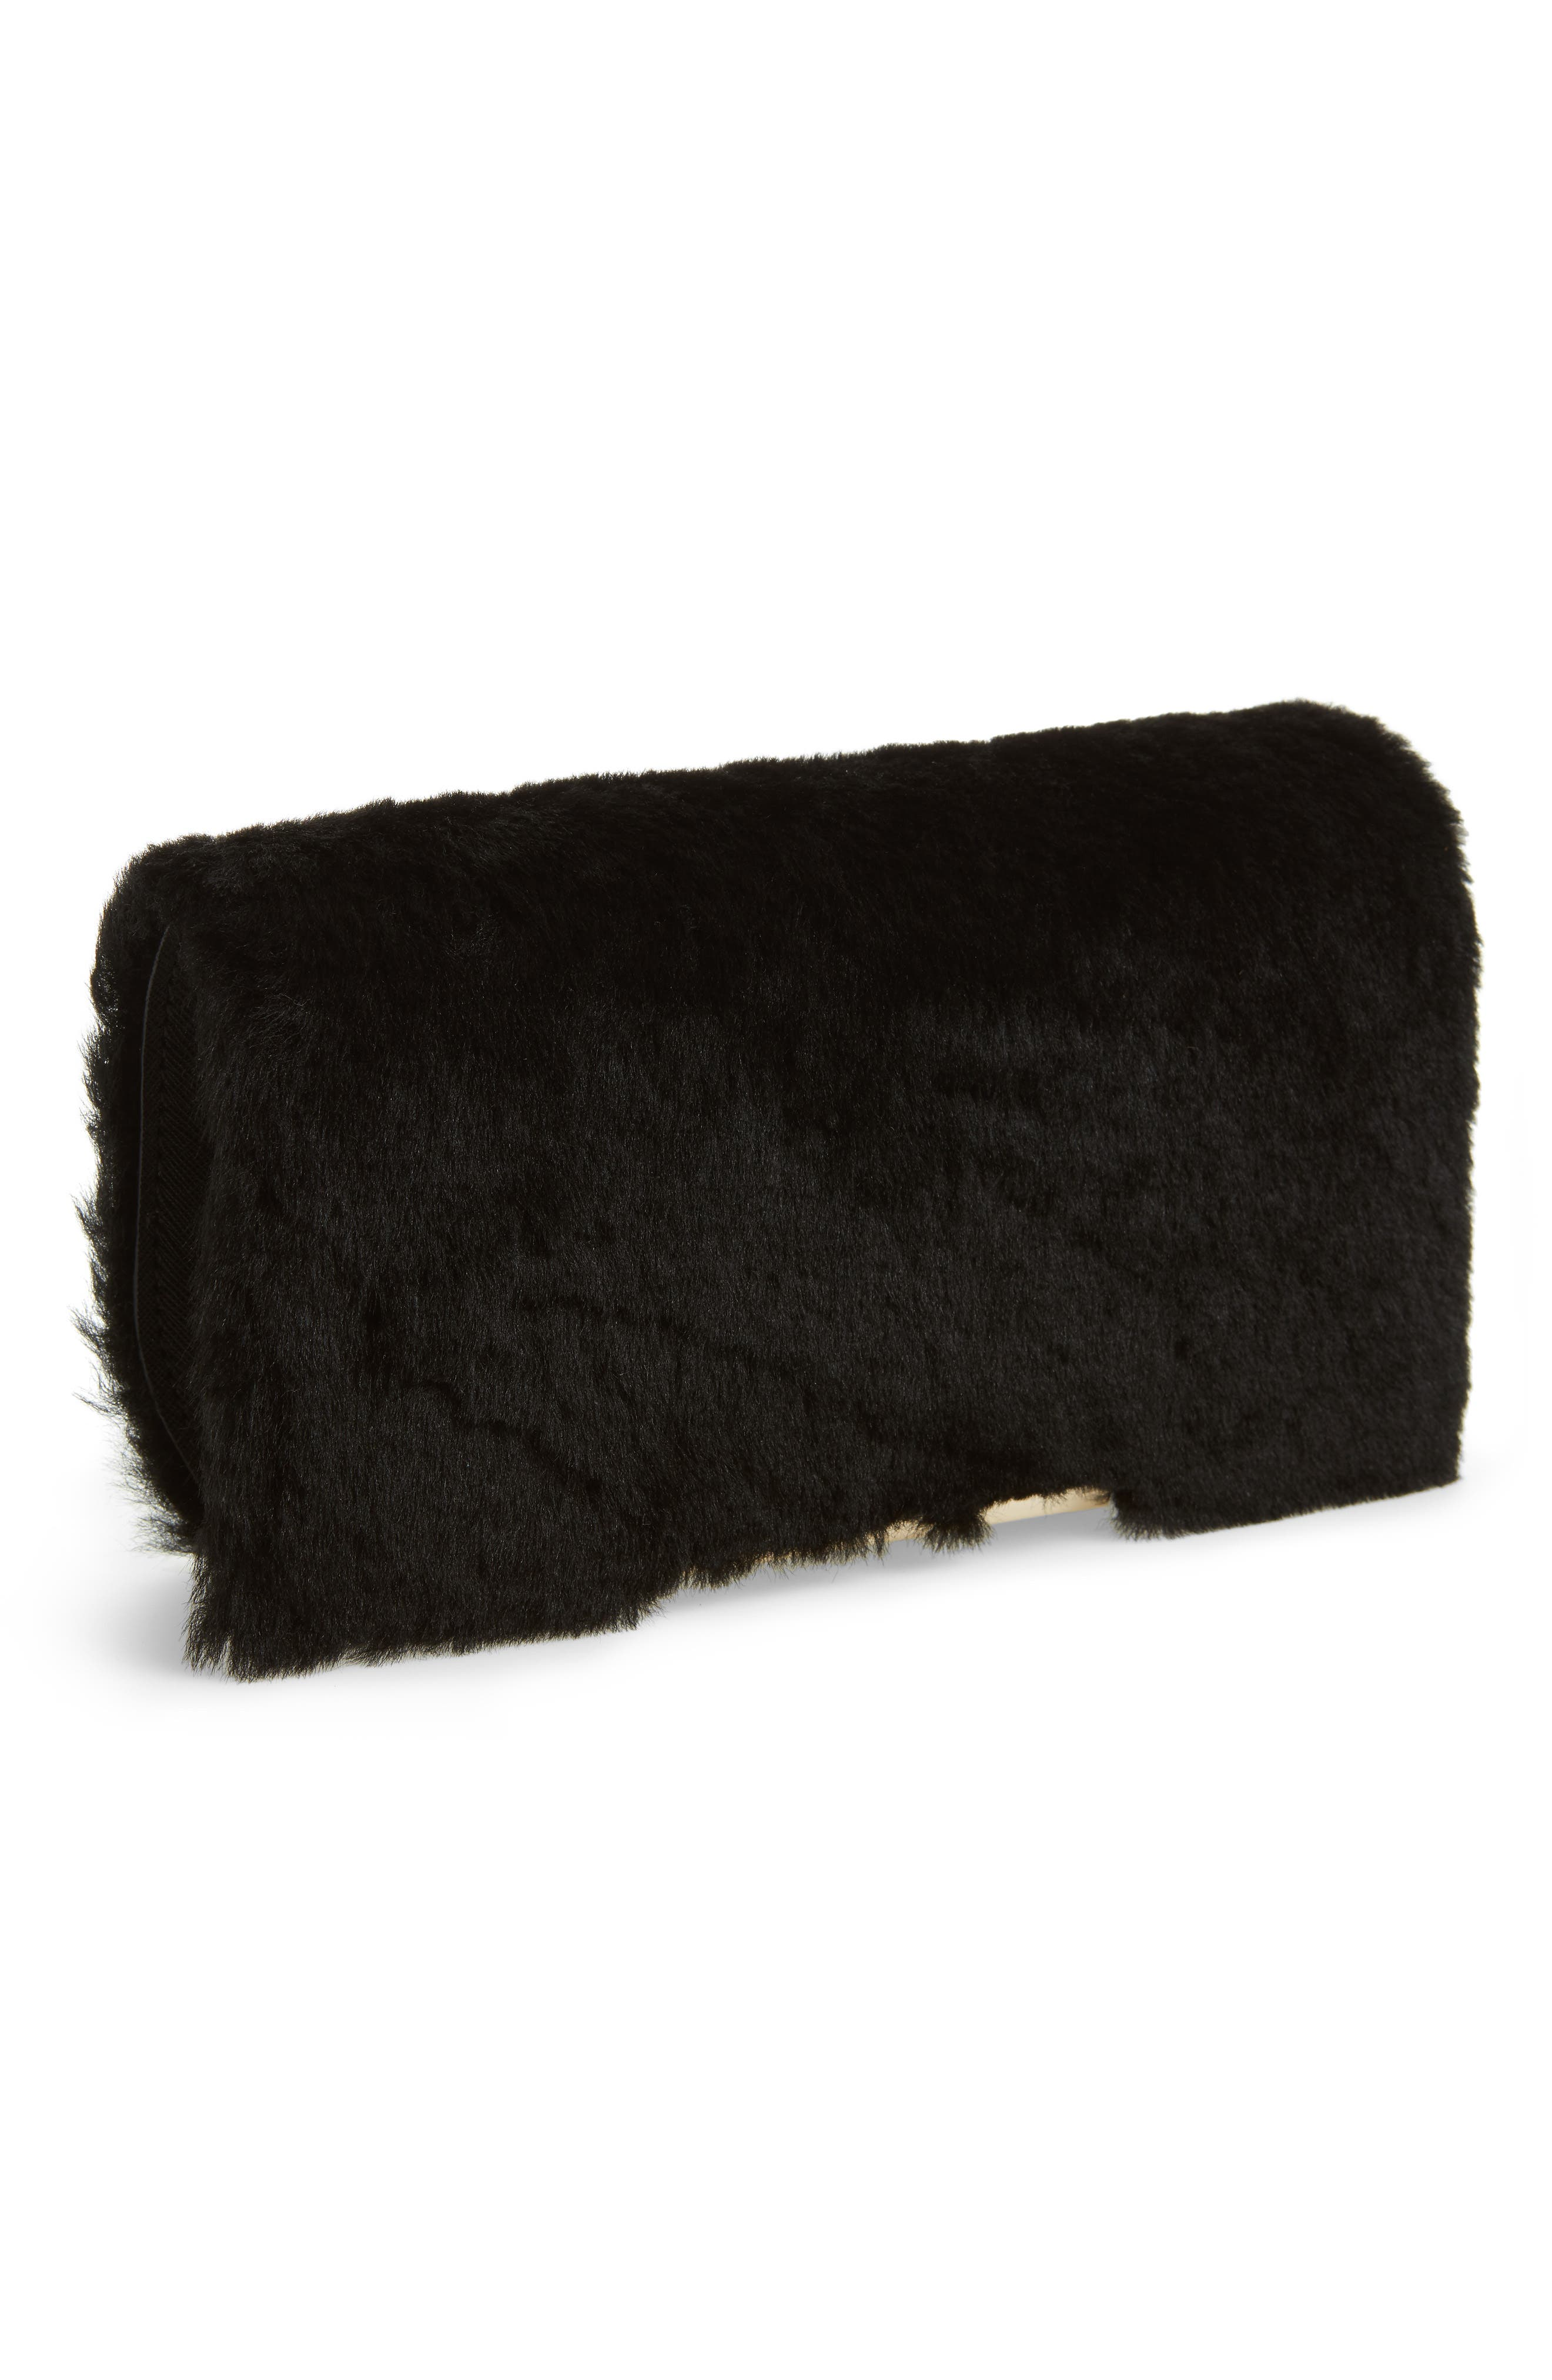 make it mine genuine shearling snap-on accent flap,                             Main thumbnail 1, color,                             Black